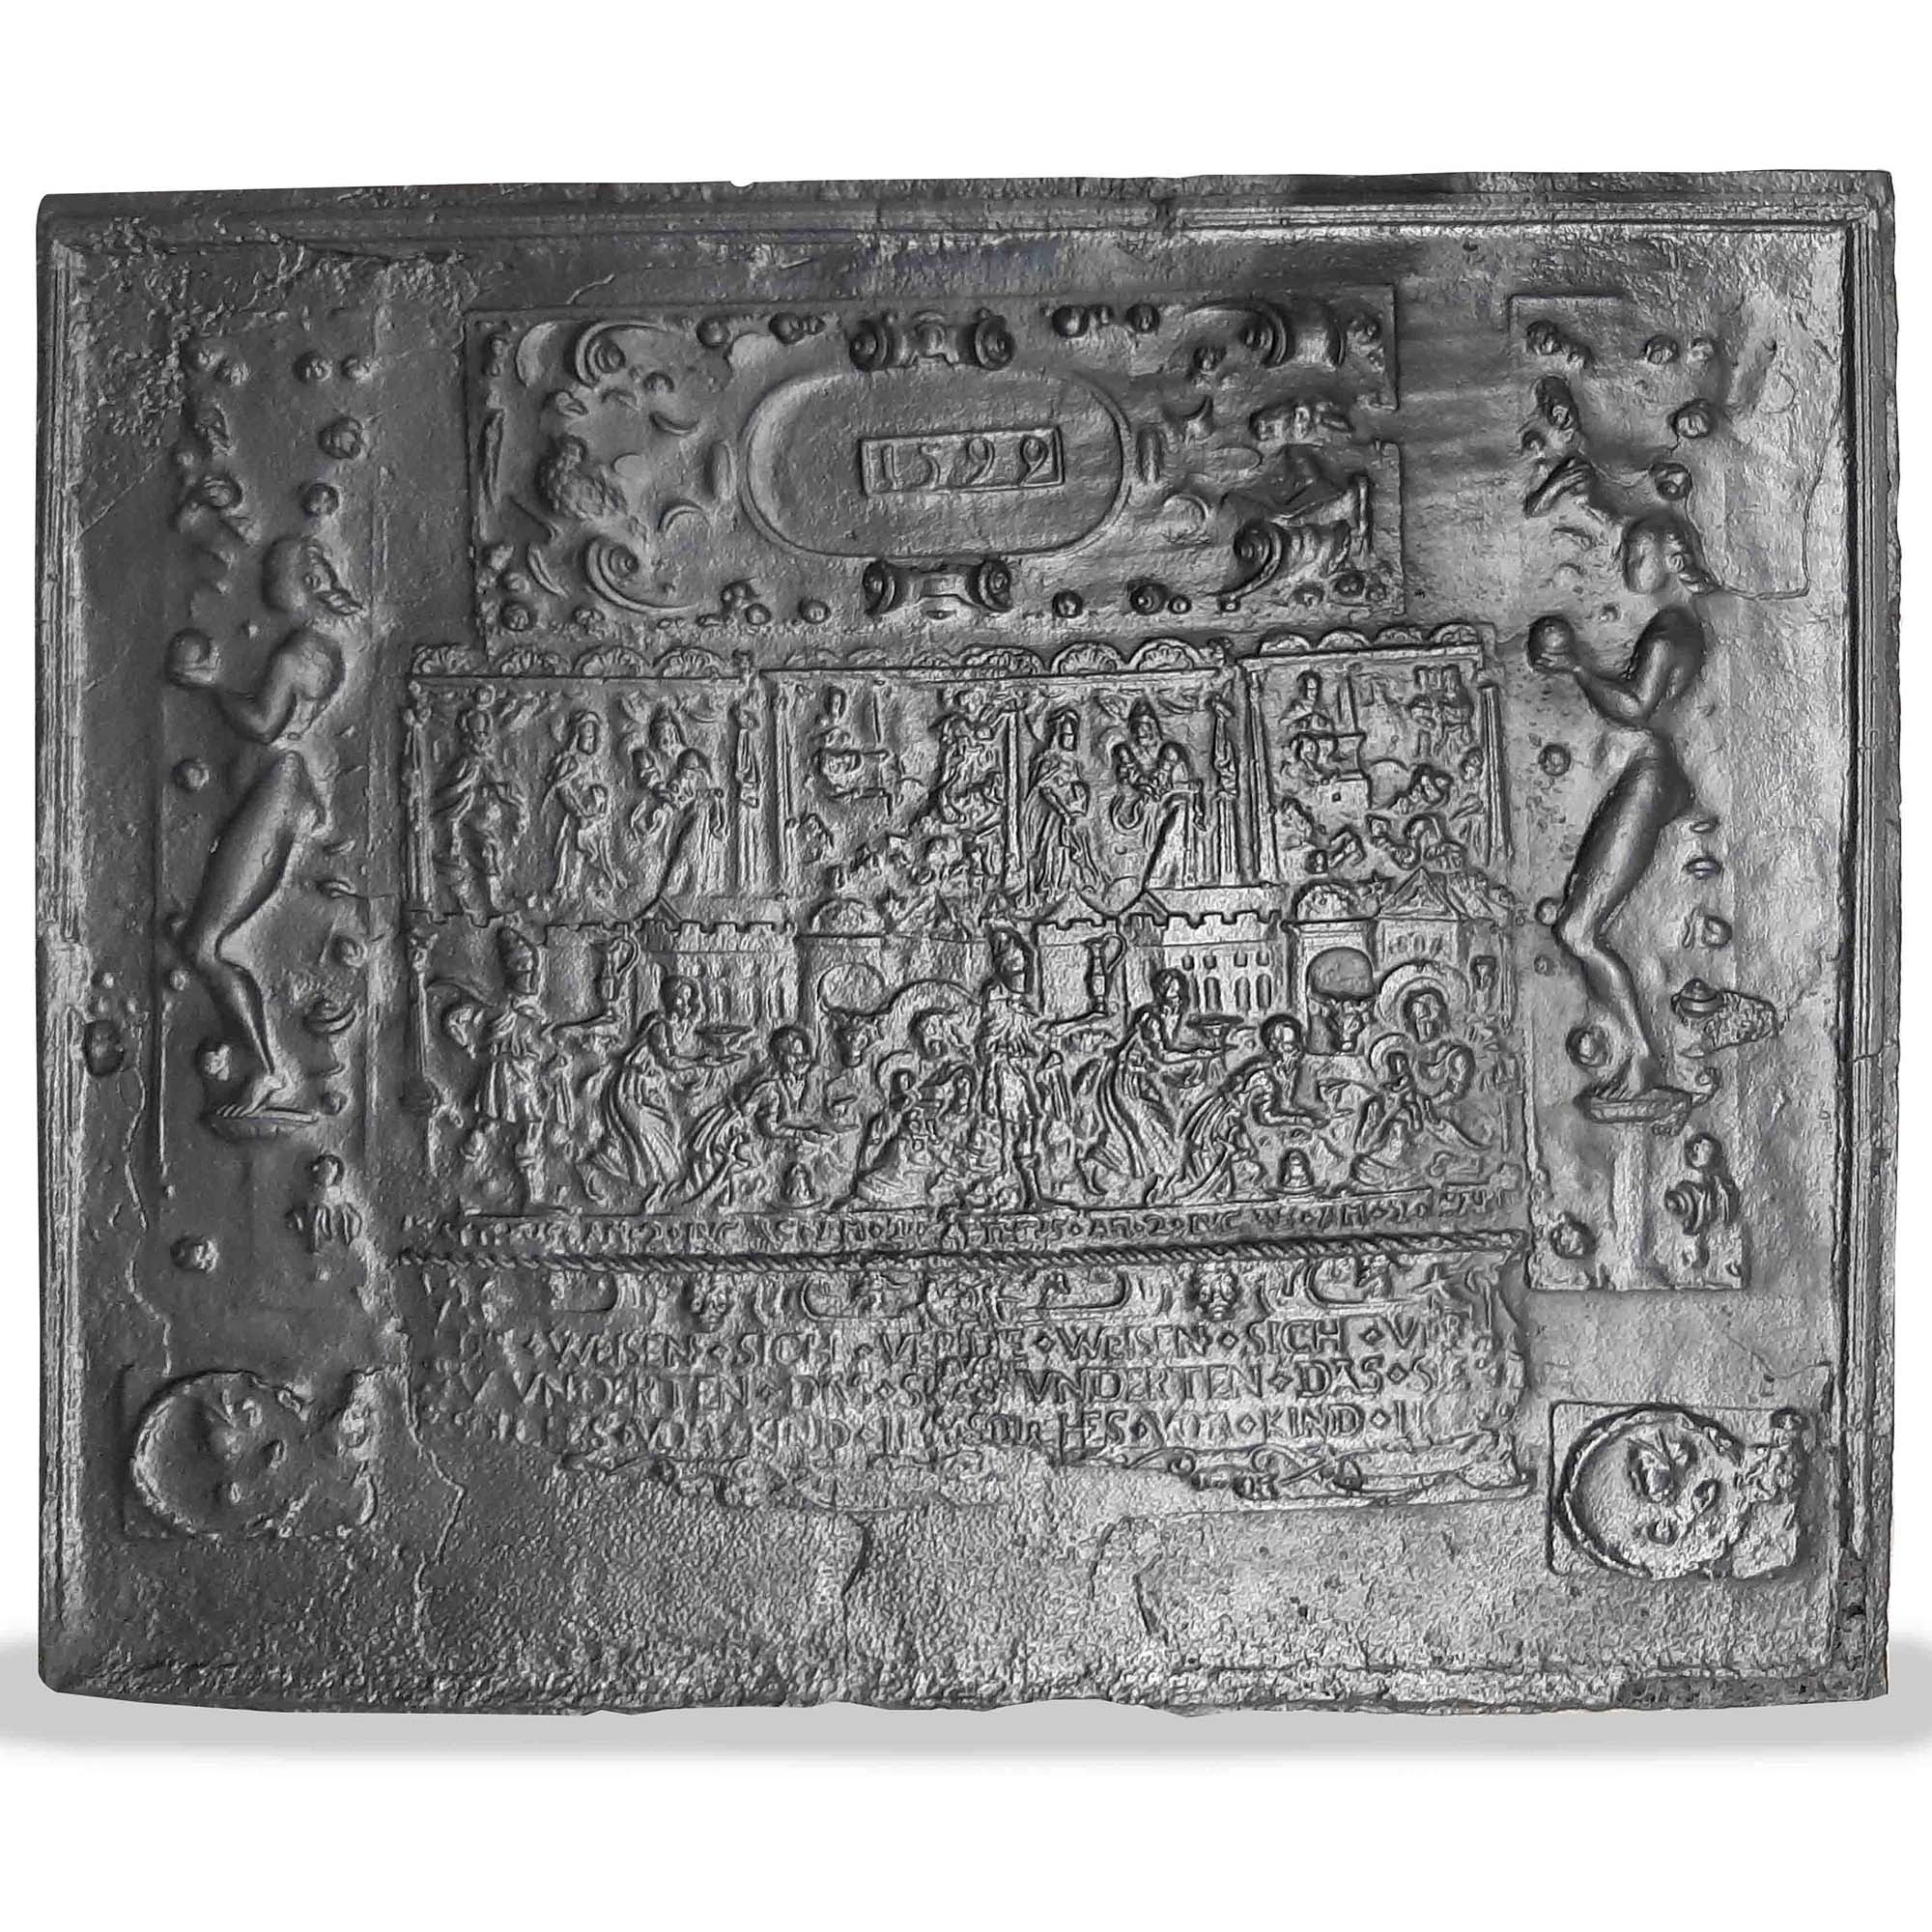 Antique 16th century fireplace back plate with the birth of Christ depicted